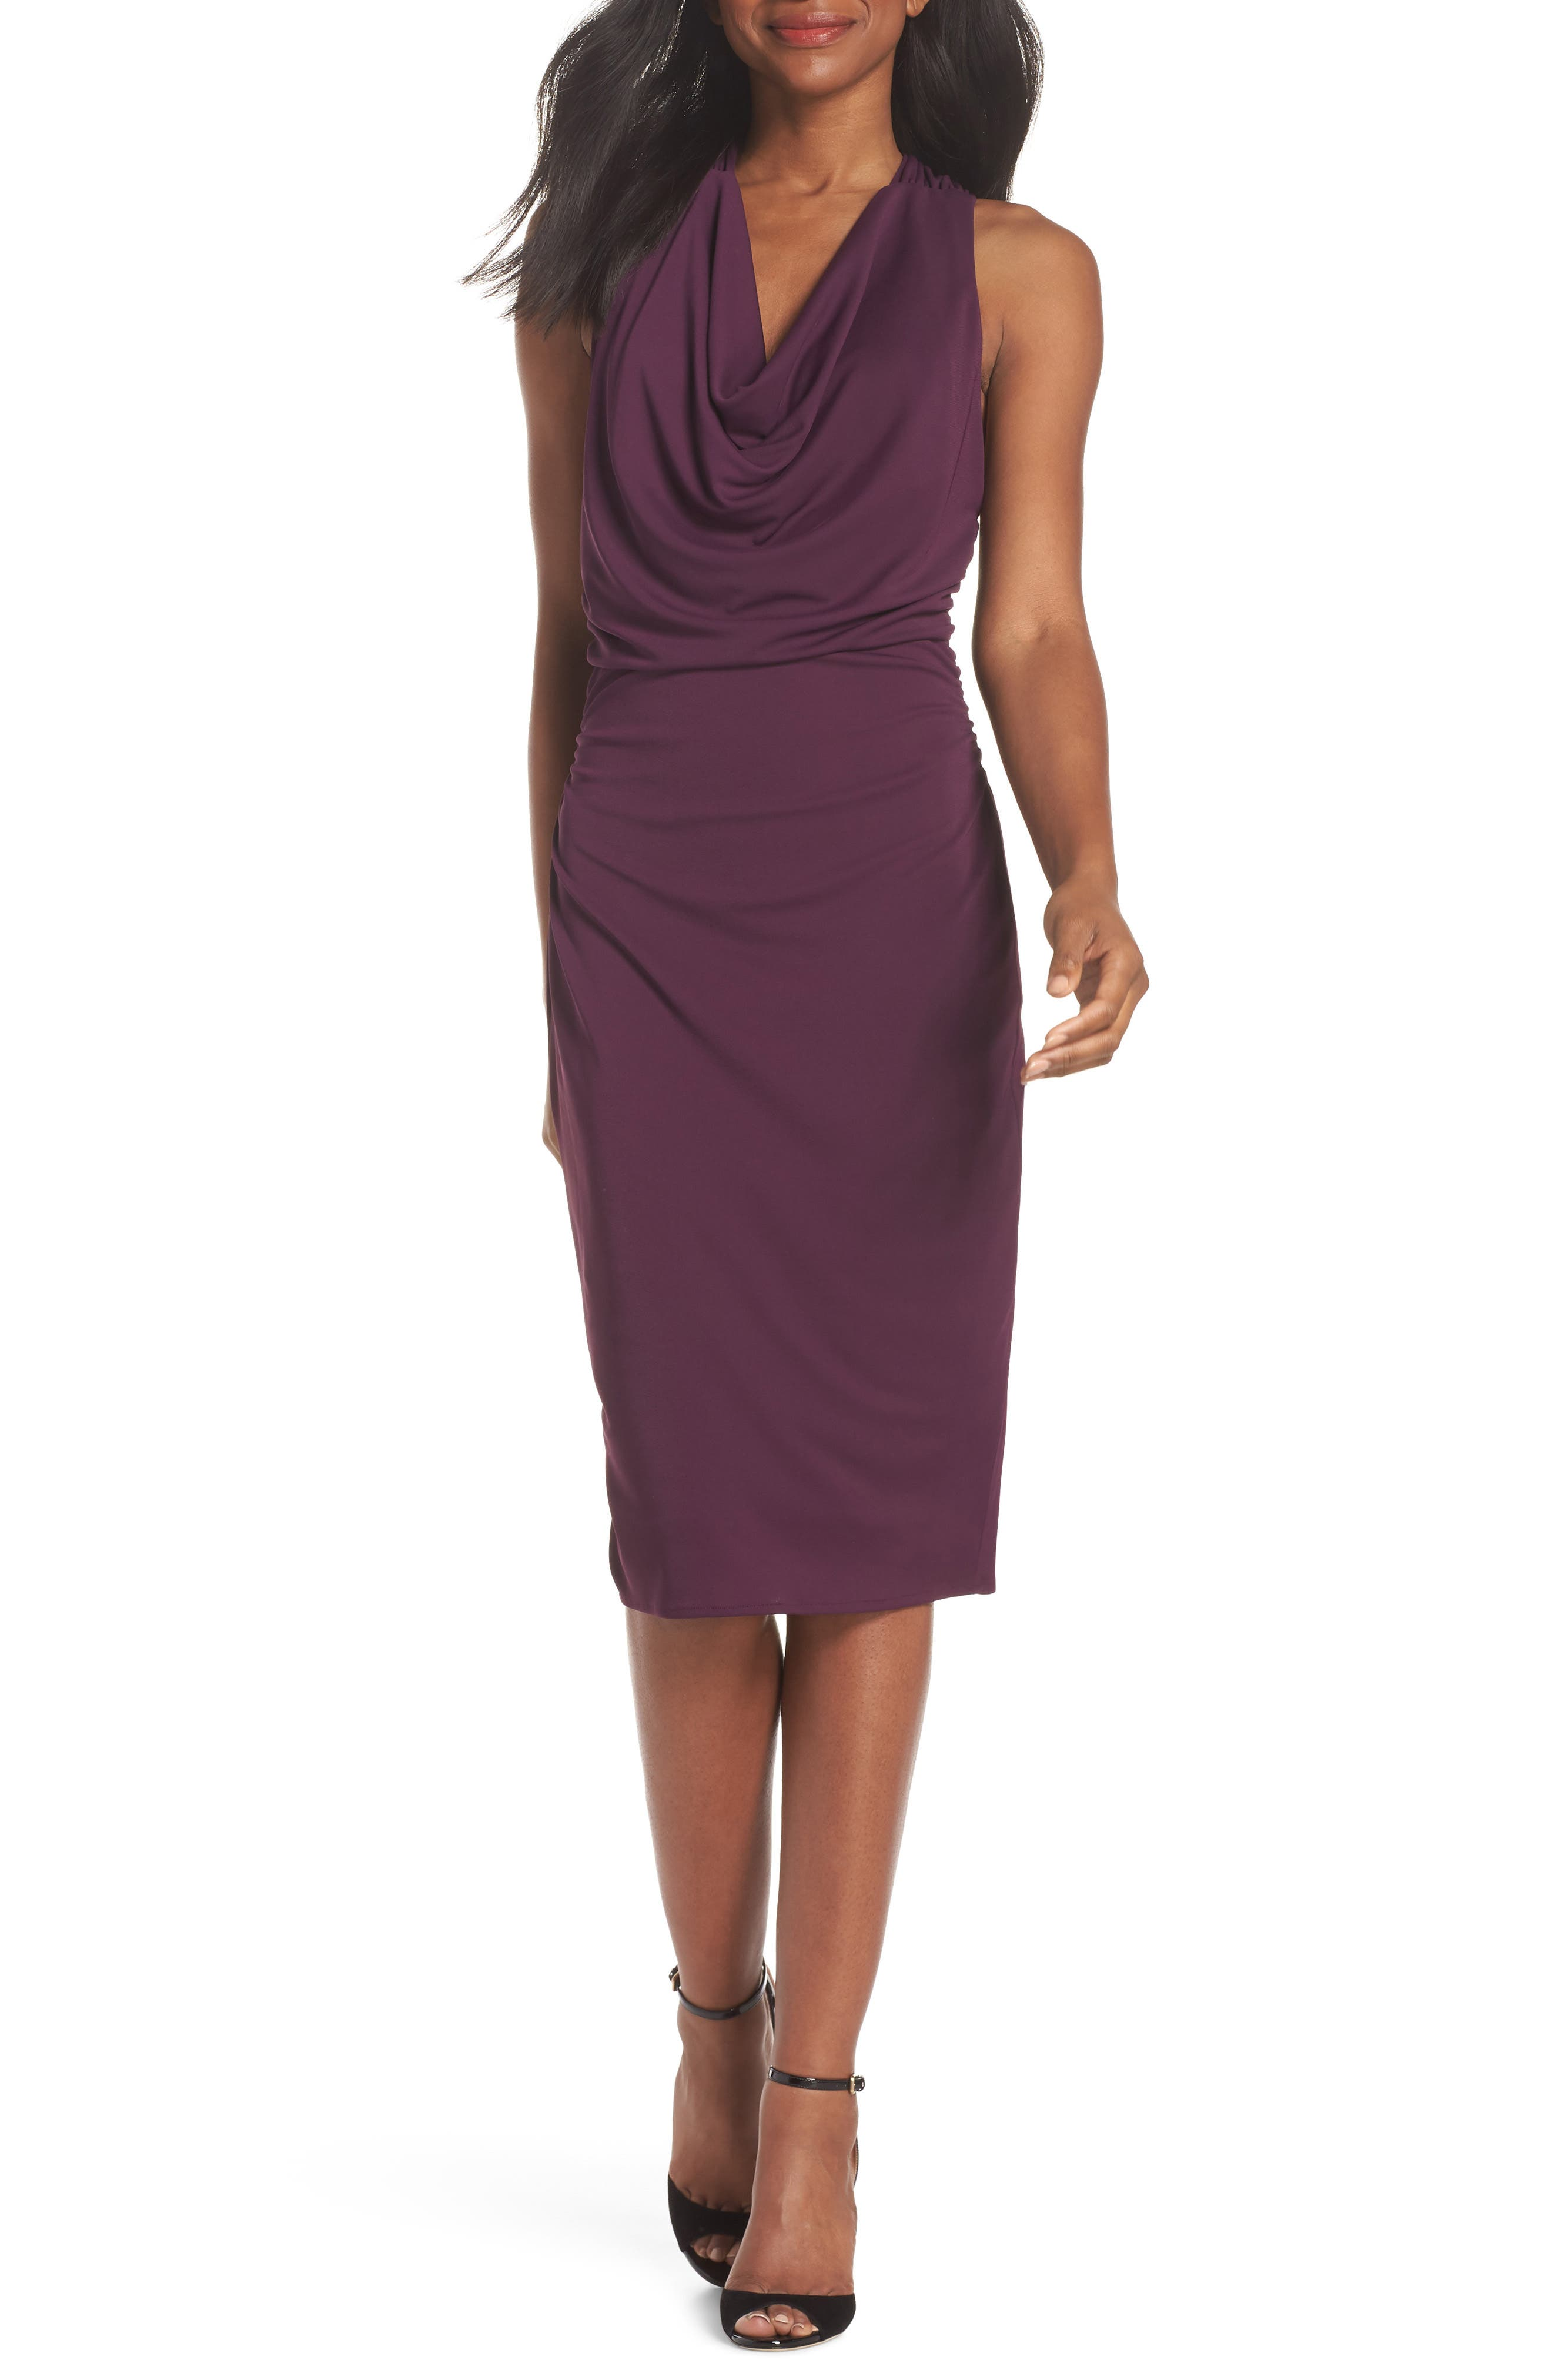 Maria Bianca Nero Elise Cowl Neck Sleeveless Dress